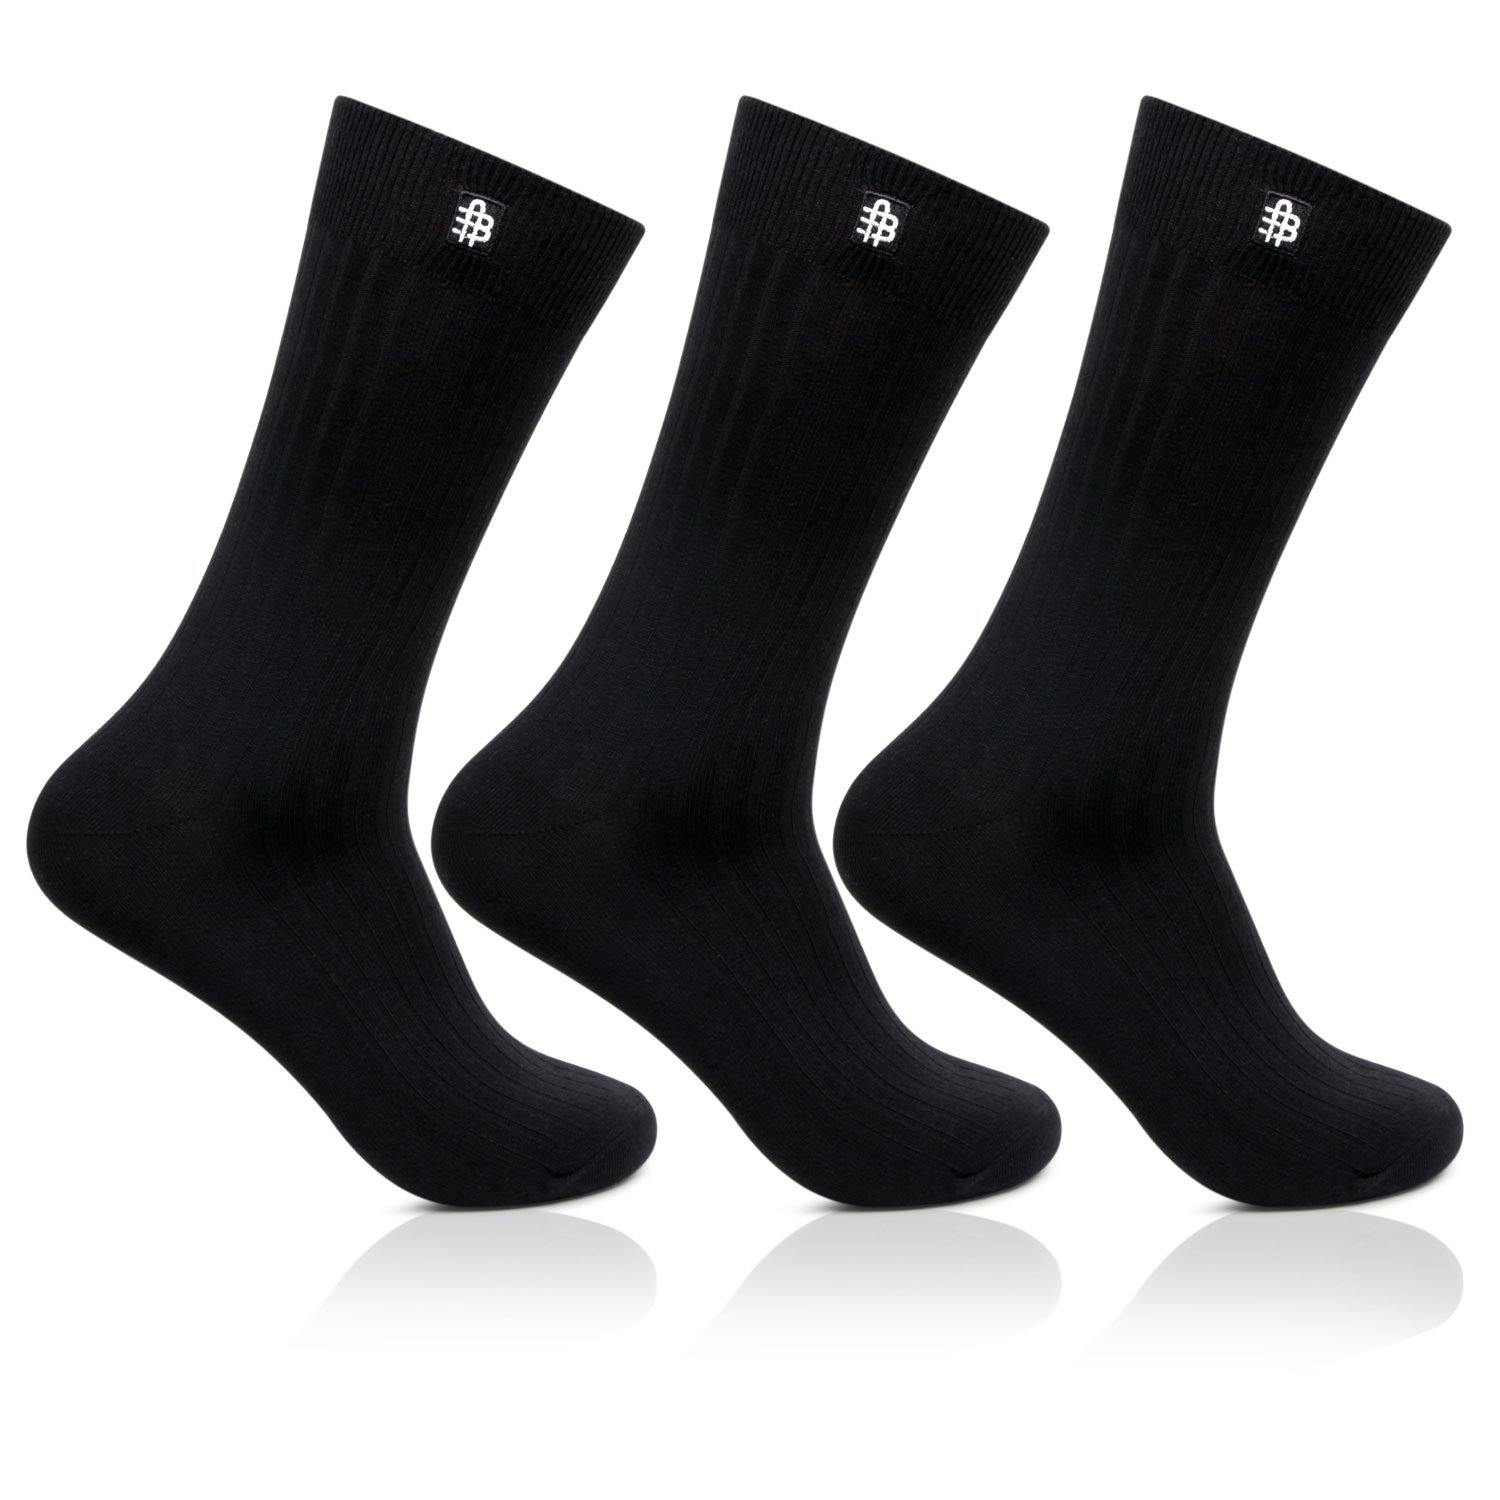 Men's Cotton Black Rib Socks- Pack of 3